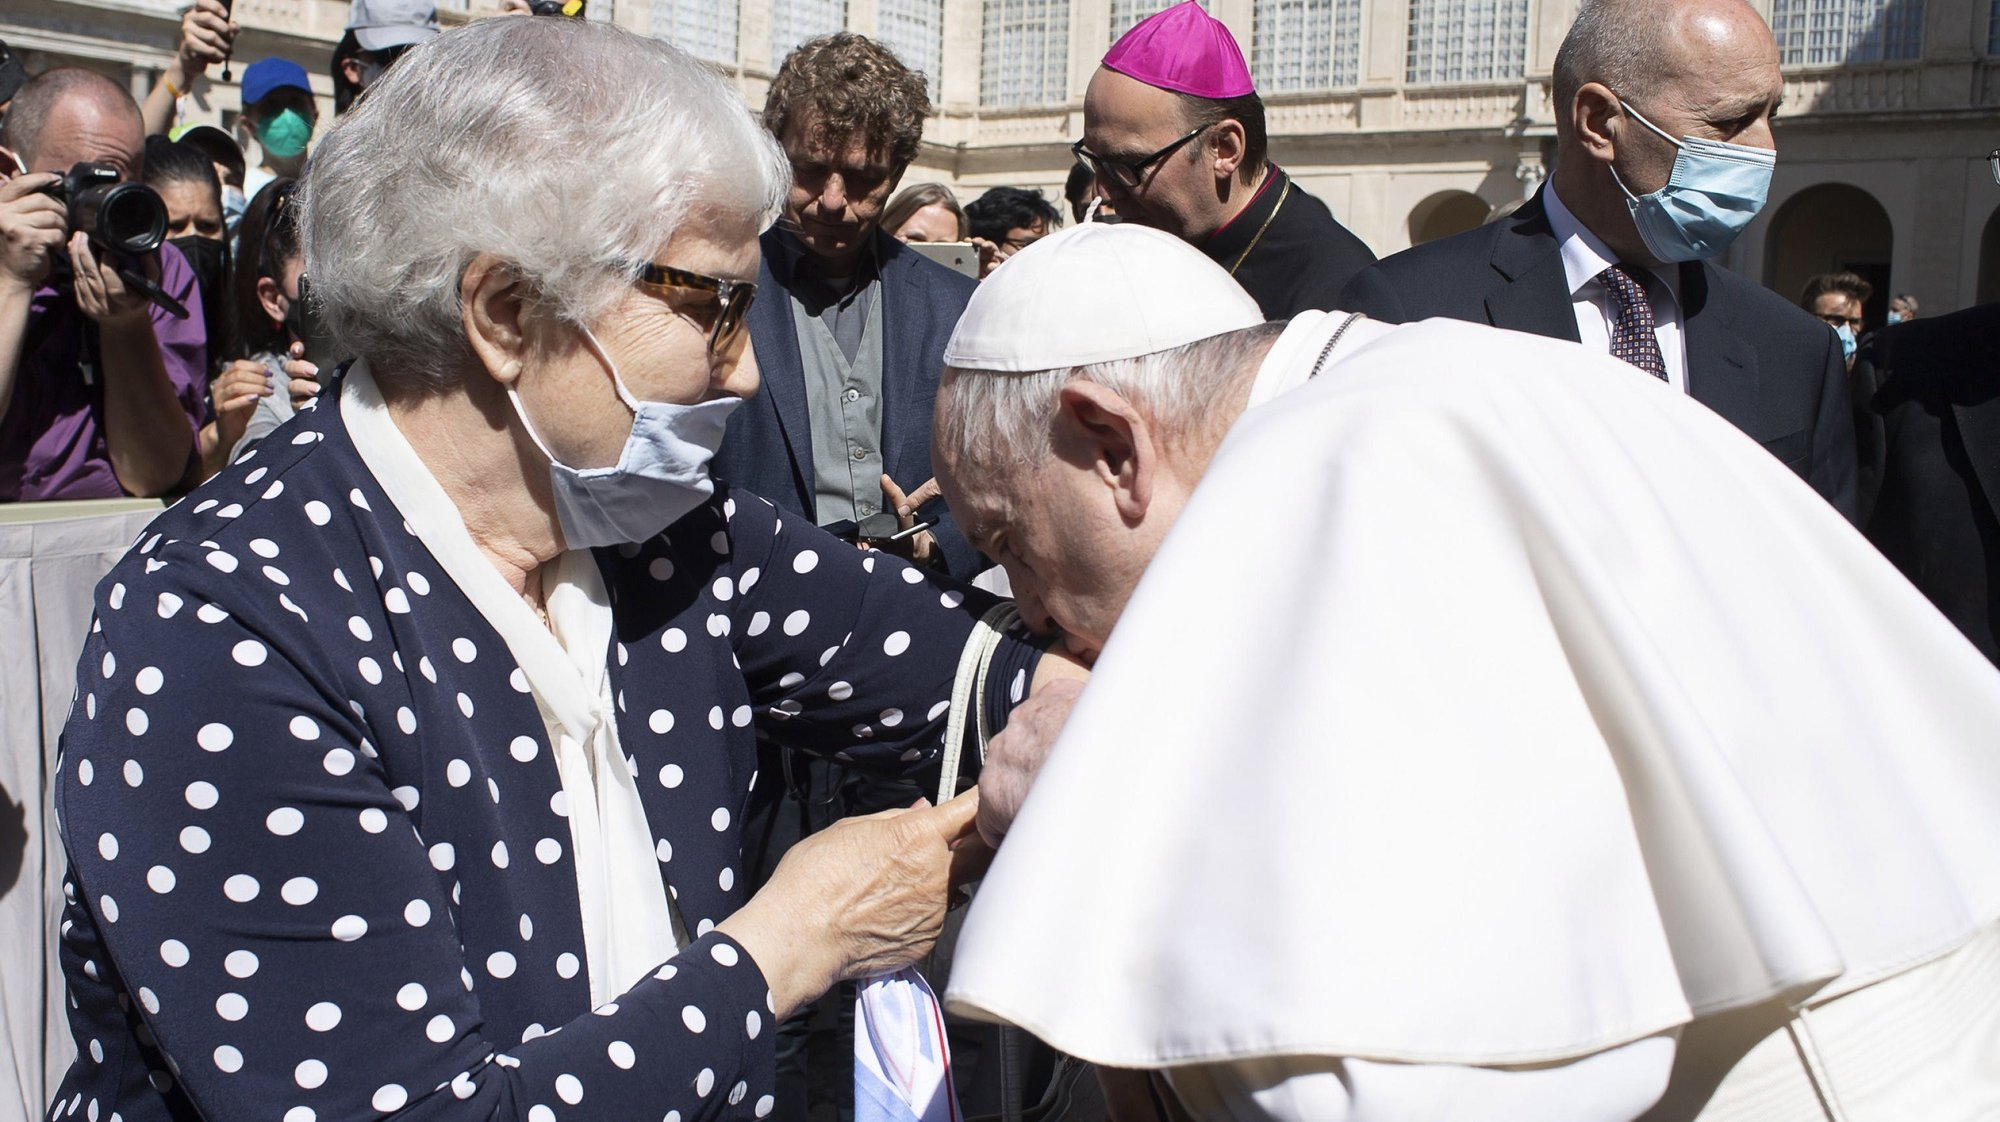 epa09229060 A handout picture provided by the Vatican Media shows Pope Francis kissing the number tattooed at the concentration camp on the arm of survivor Lidia Maksymowicz, in Vatican City, 26 May 2021. They exchanged a few words, embraced, then the Pontiff kissed the woman's arm with the number tattooed at the concentration camp.  EPA/VATICAN MEDIA HANDOUT  HANDOUT EDITORIAL USE ONLY/NO SALES